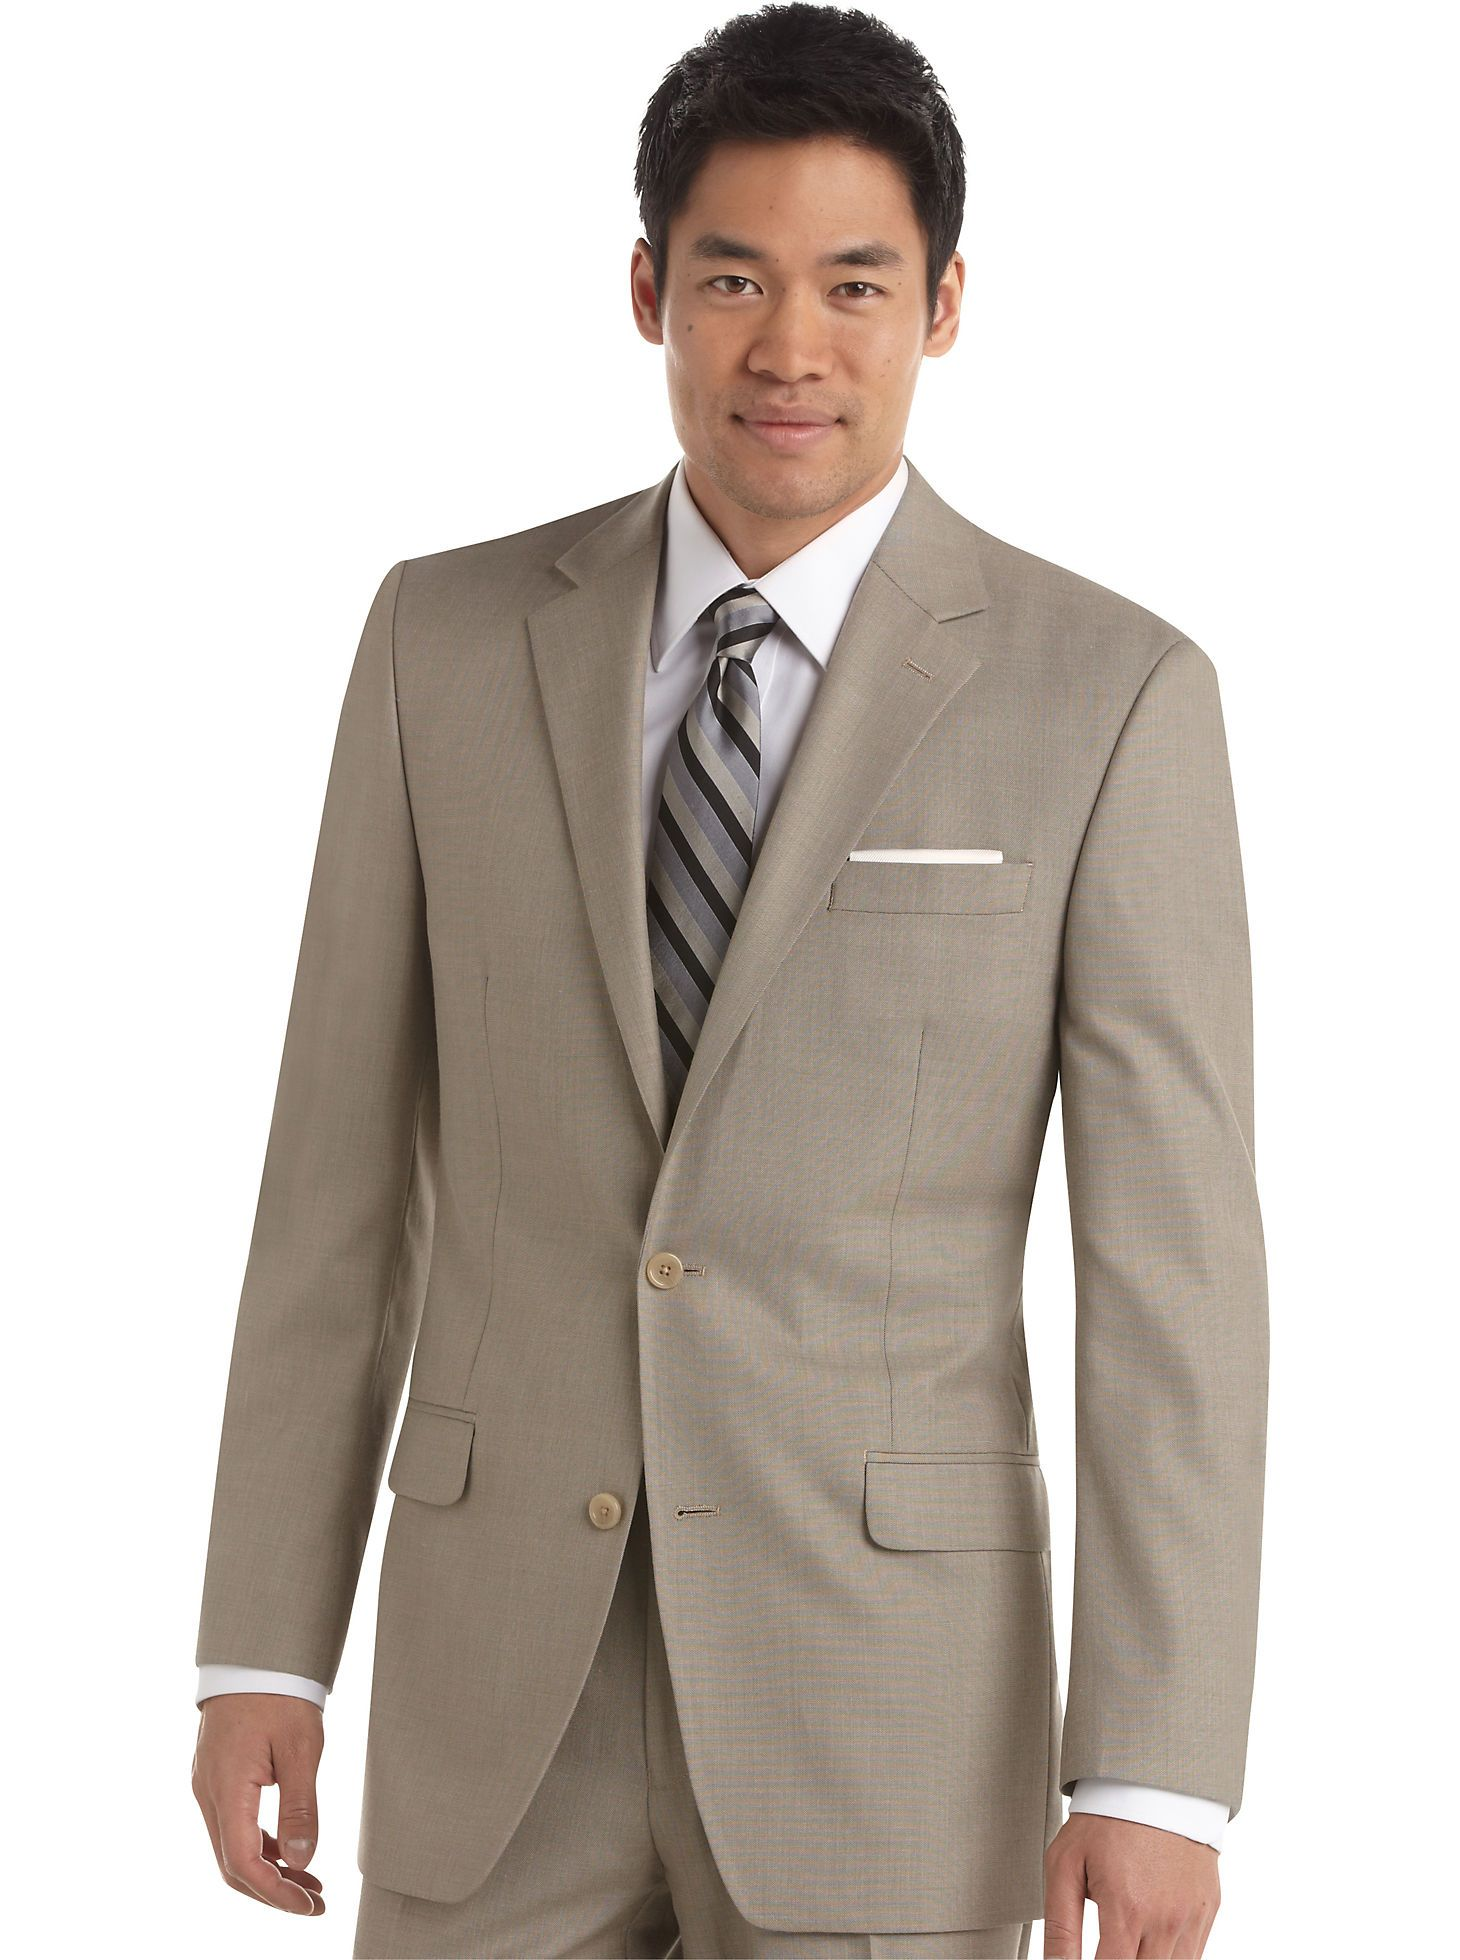 Mens Warehouse Suits - Michael Kors Tan Sharkskin Slim Fit Suit ...